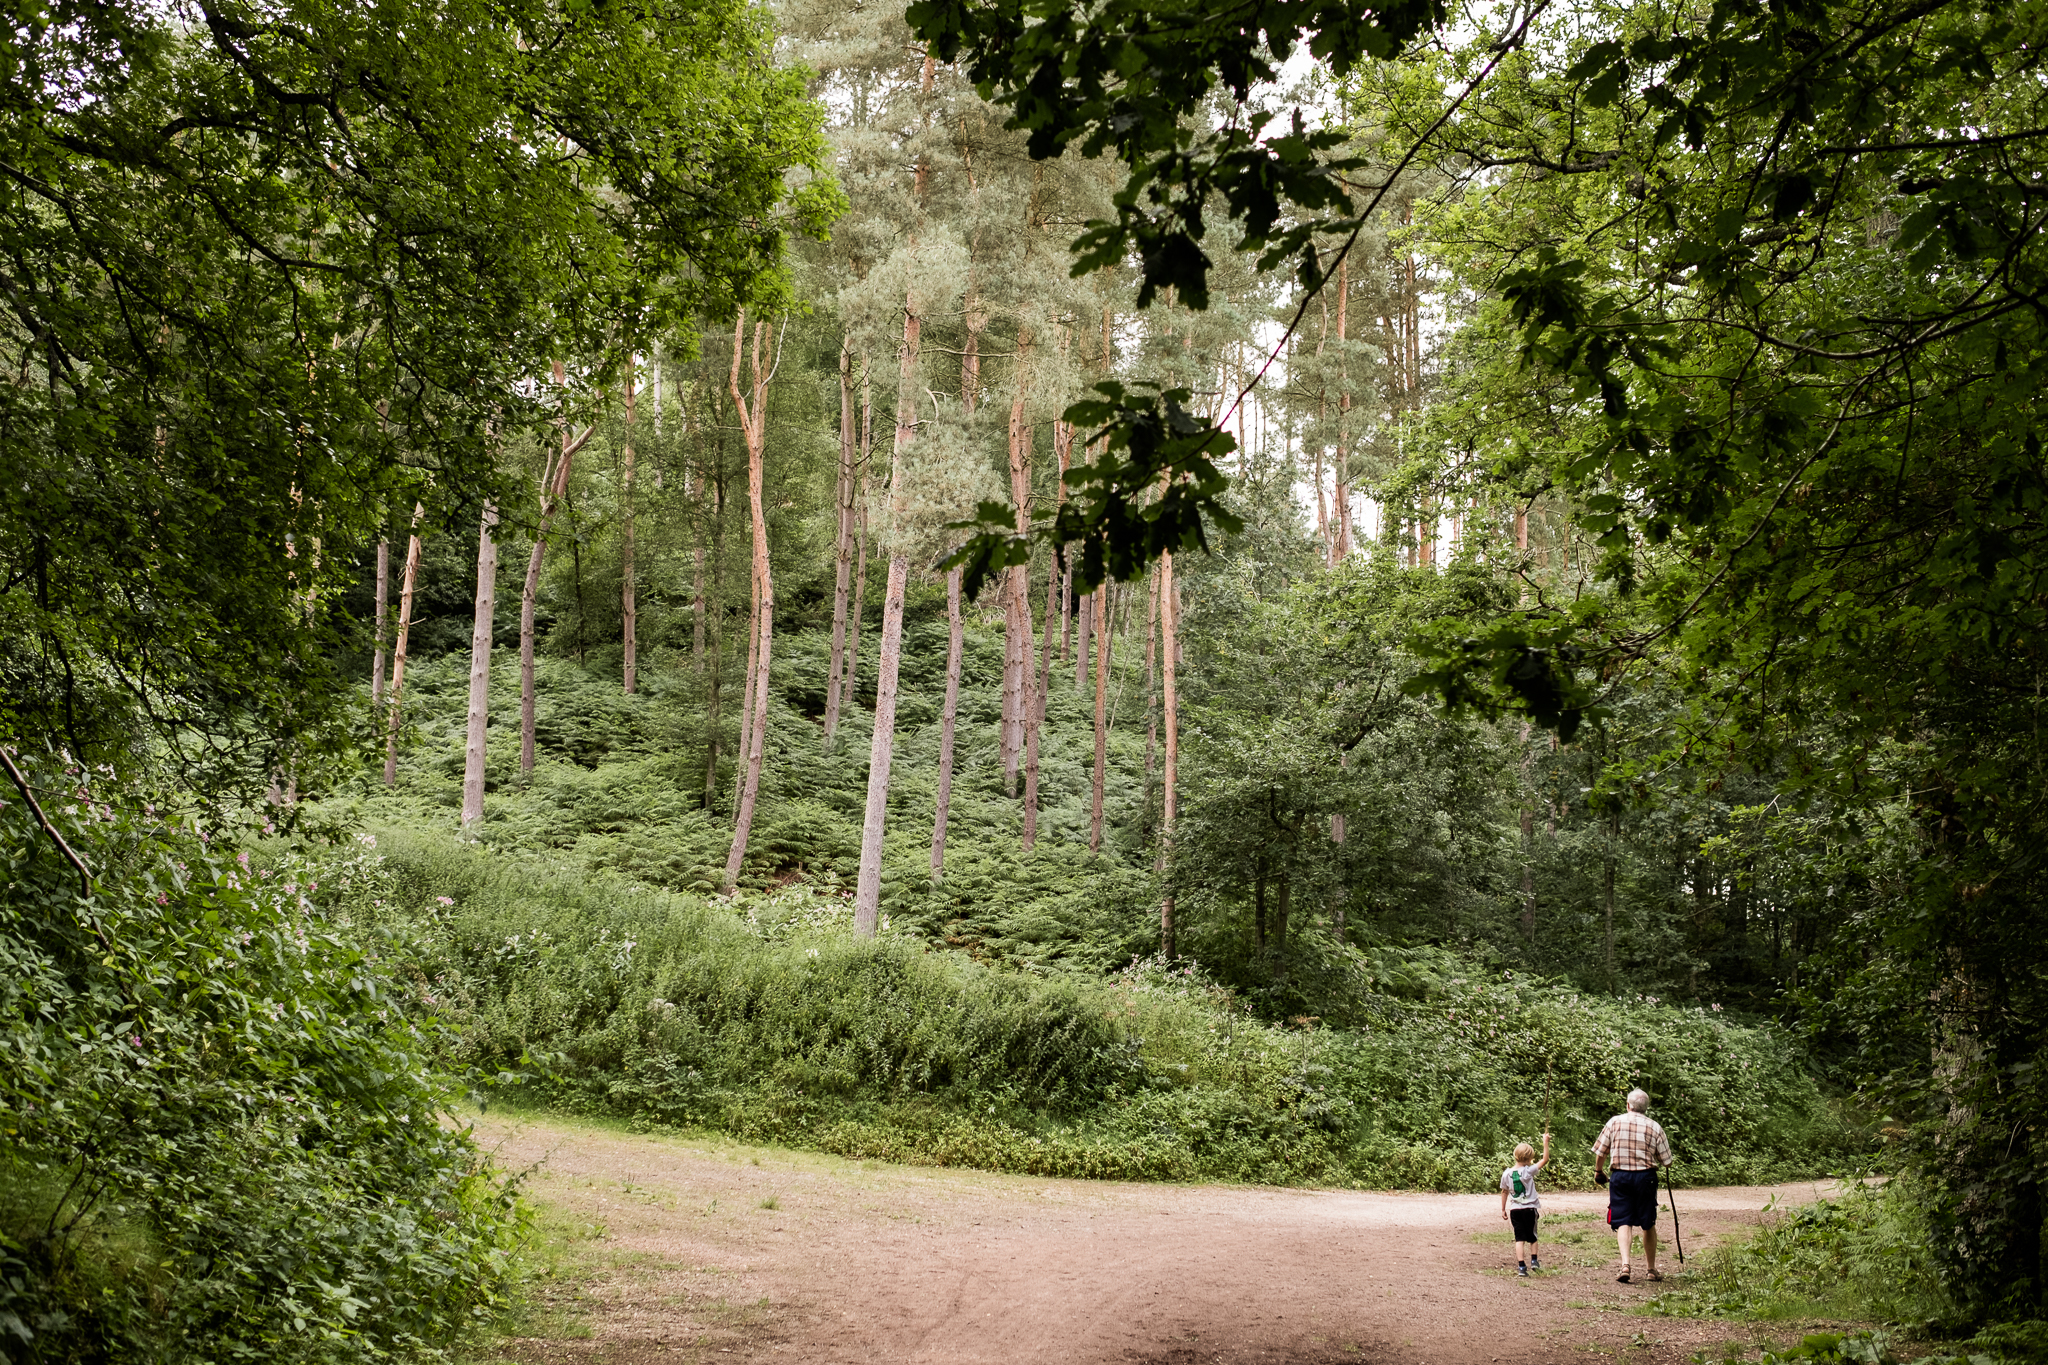 07.31.2016 Dimmingsdale Walk Photowalk Staffordshire Ramblers Retreat Trees-29.jpg